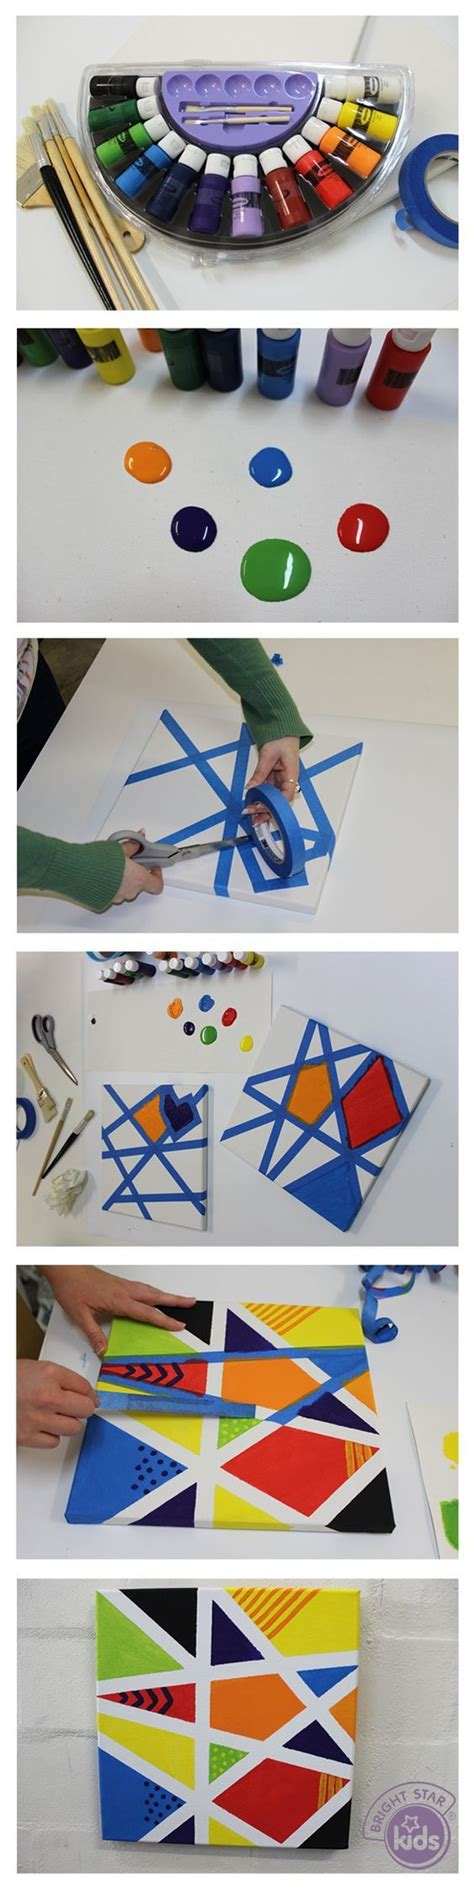 1000 images about art and craft ideas on pinterest gift 1000 ideas about older kids crafts on pinterest